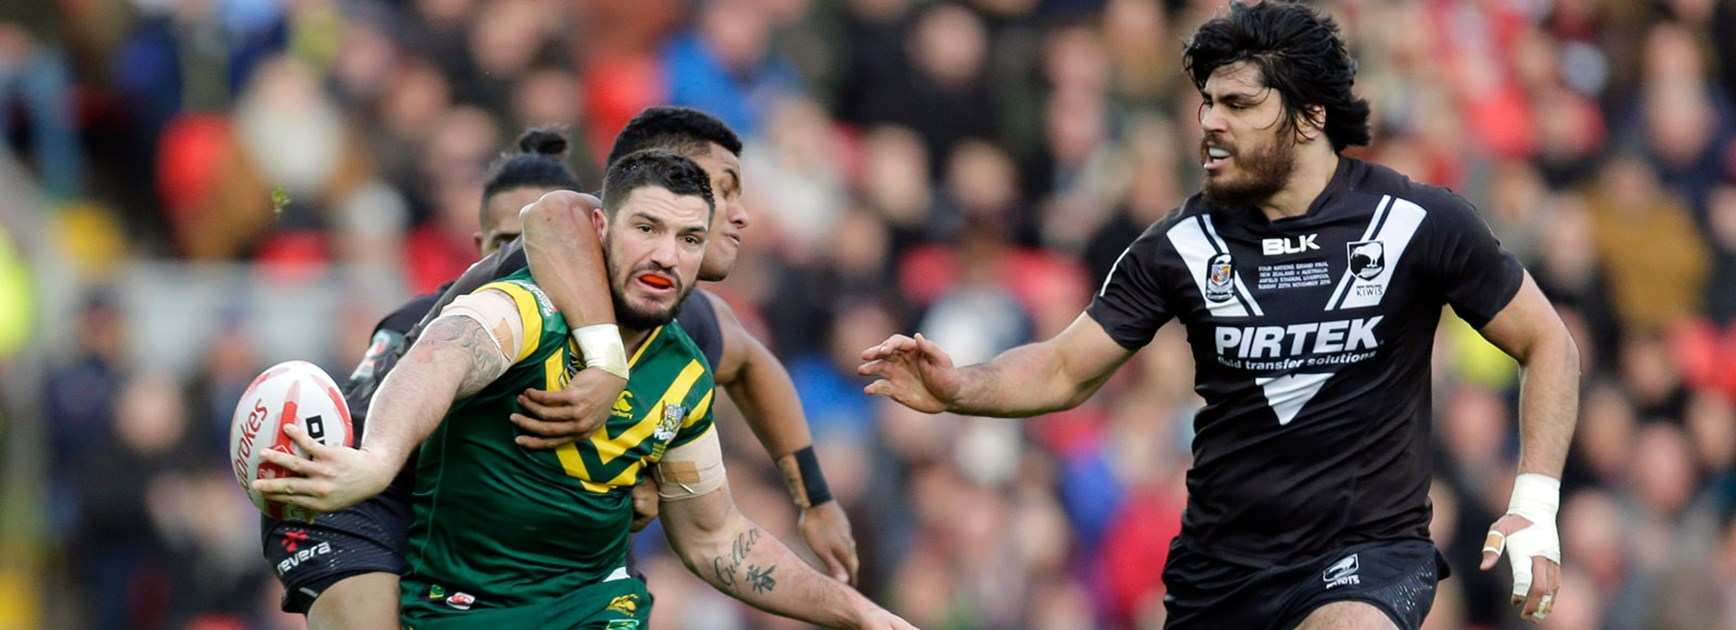 The Kiwis' left-edge defence leaked several tries in the Four Nations final.